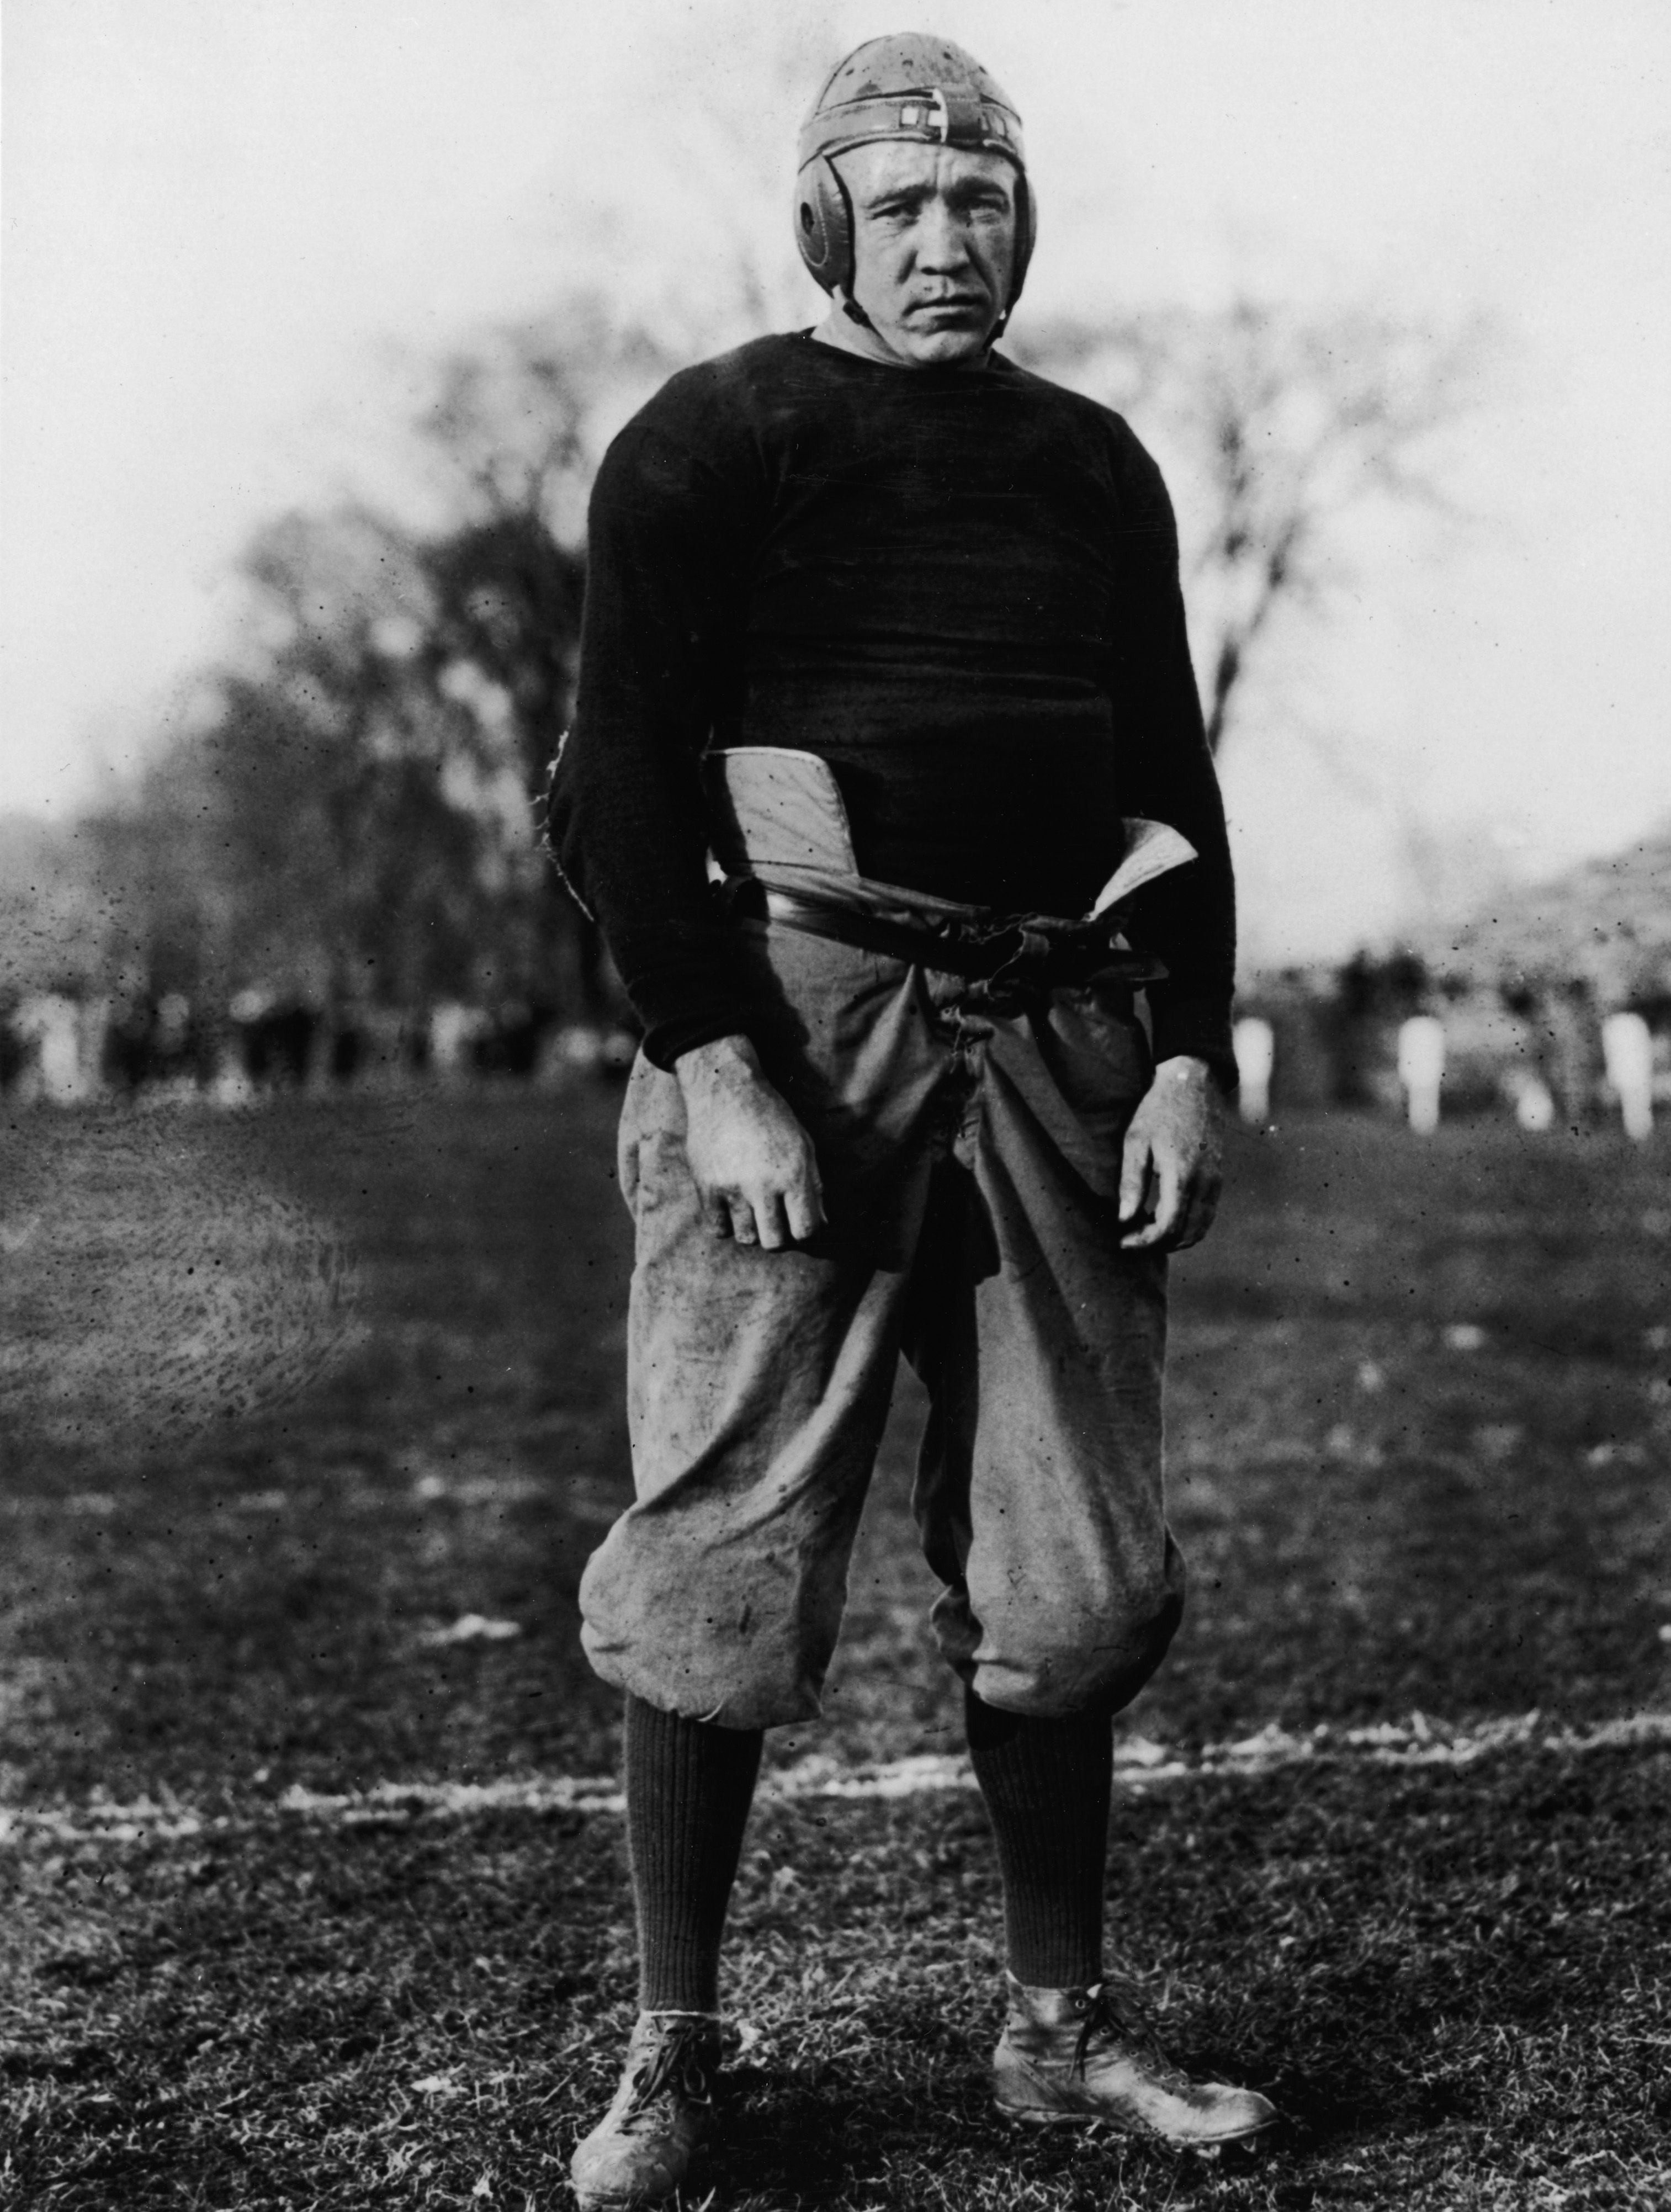 American football player and coach knute rockne 1888 1931 american football player and coach knute rockne head coach for notre dame posing in uniform on a field credit hulton archive fandeluxe Ebook collections